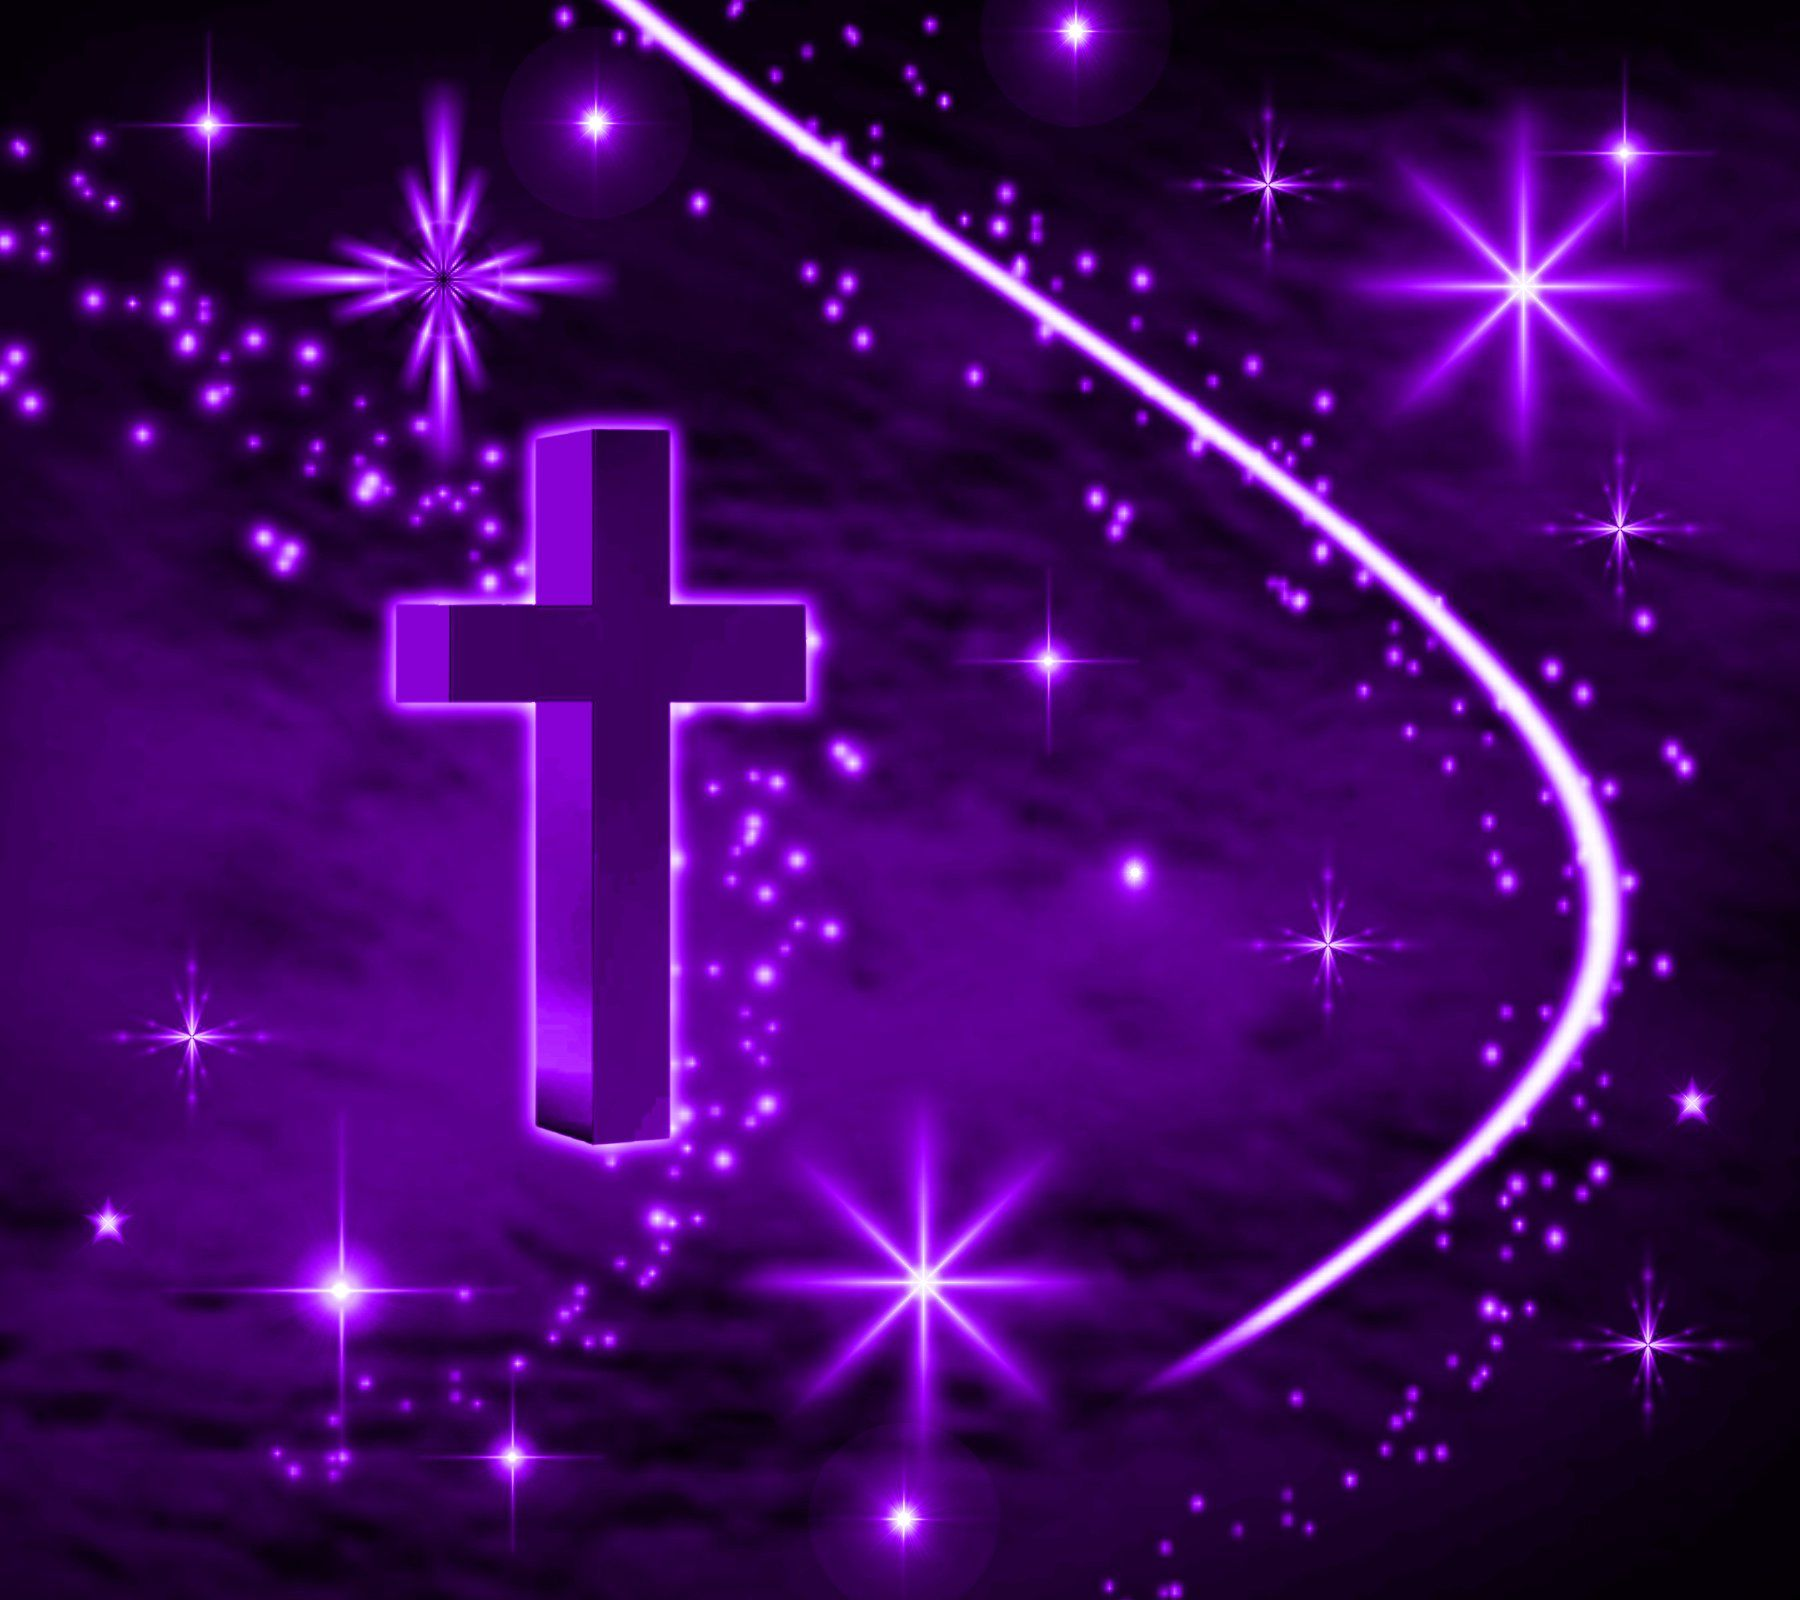 Myspace backgrounds cross with stars background for Shades of dark purple